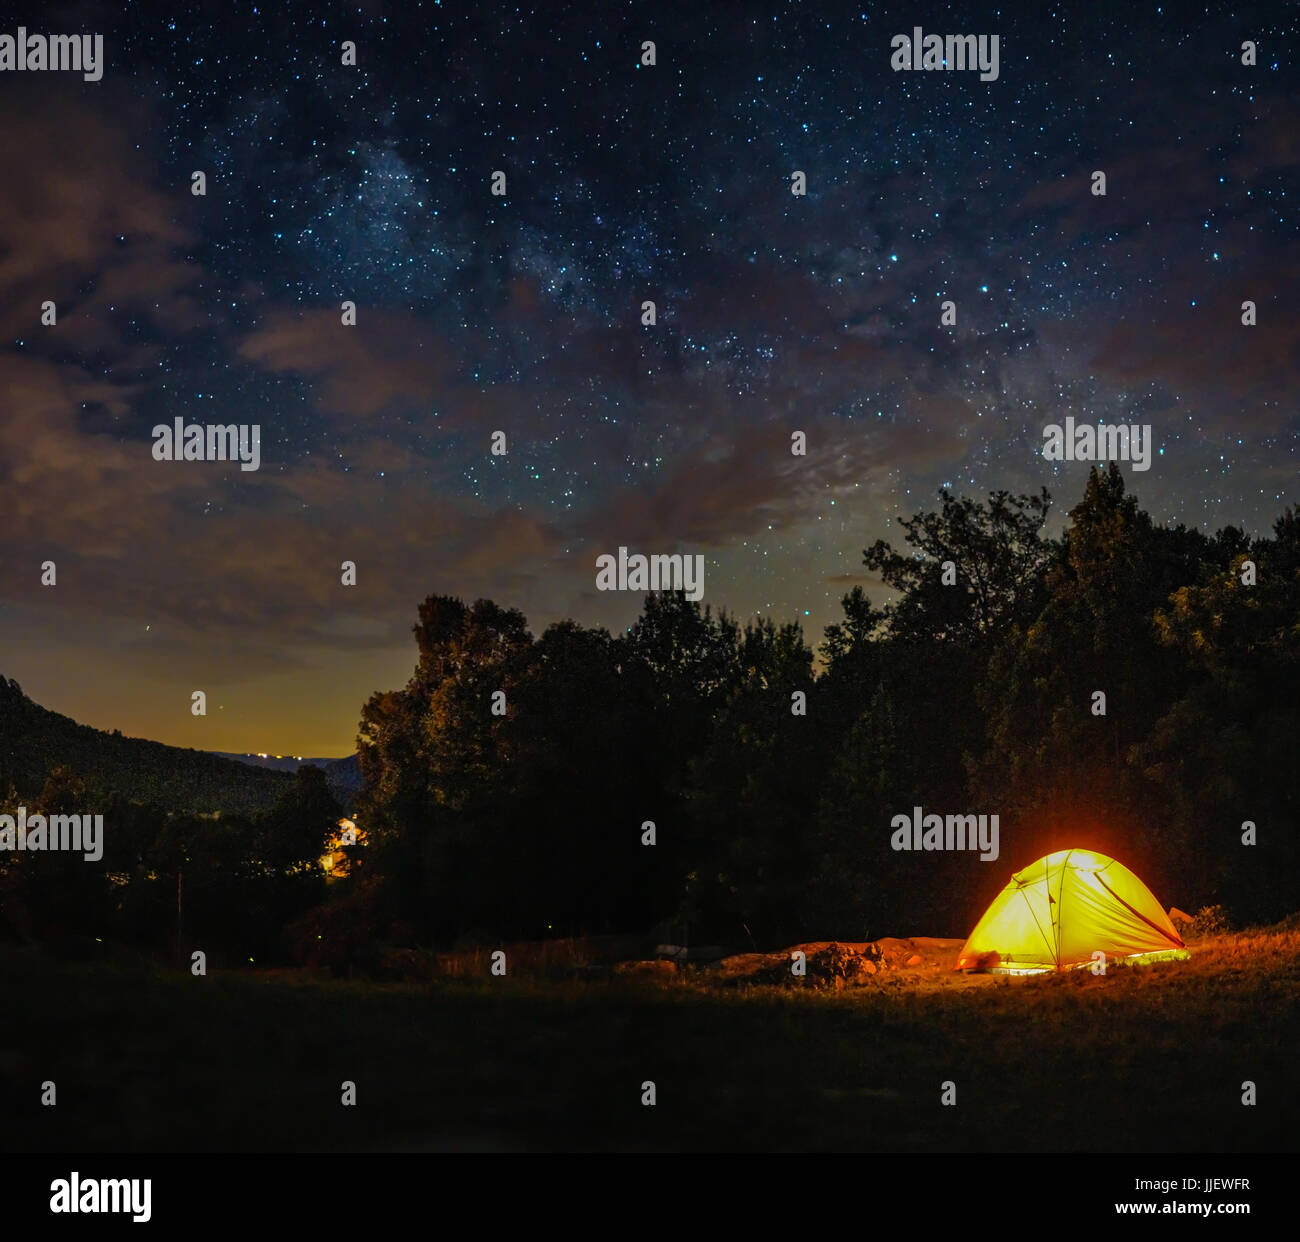 A camping tent under milky way sky and twilight at night - Stock Image